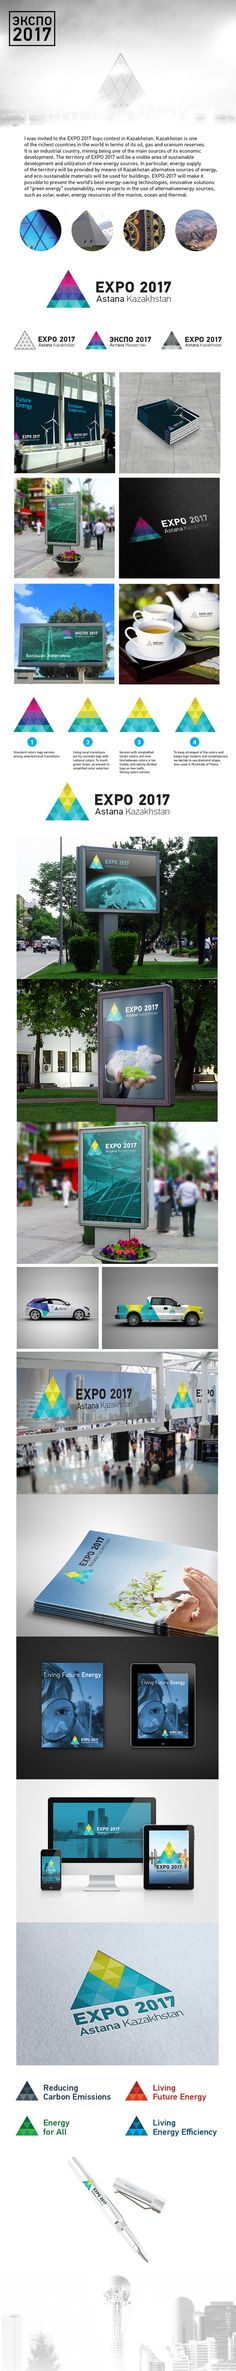 EXPO 2017 Astana by Lukasz KuIakowski, via Behance